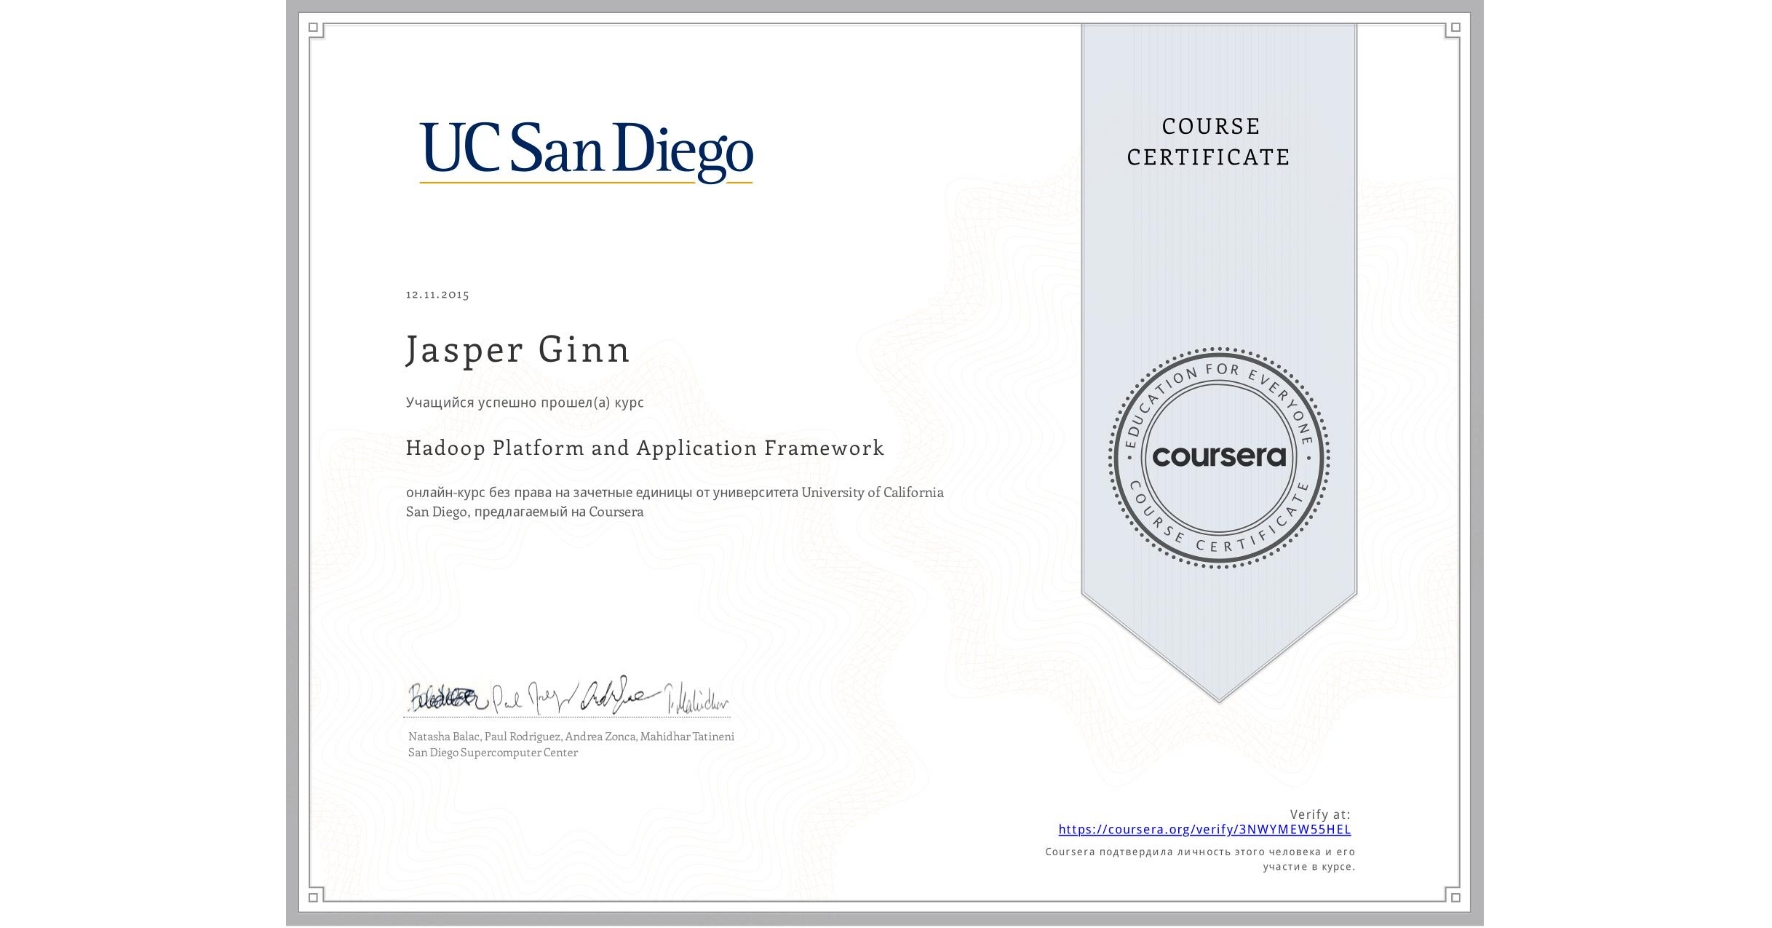 View certificate for Jasper Ginn, Hadoop Platform and Application Framework, an online non-credit course authorized by University of California San Diego and offered through Coursera